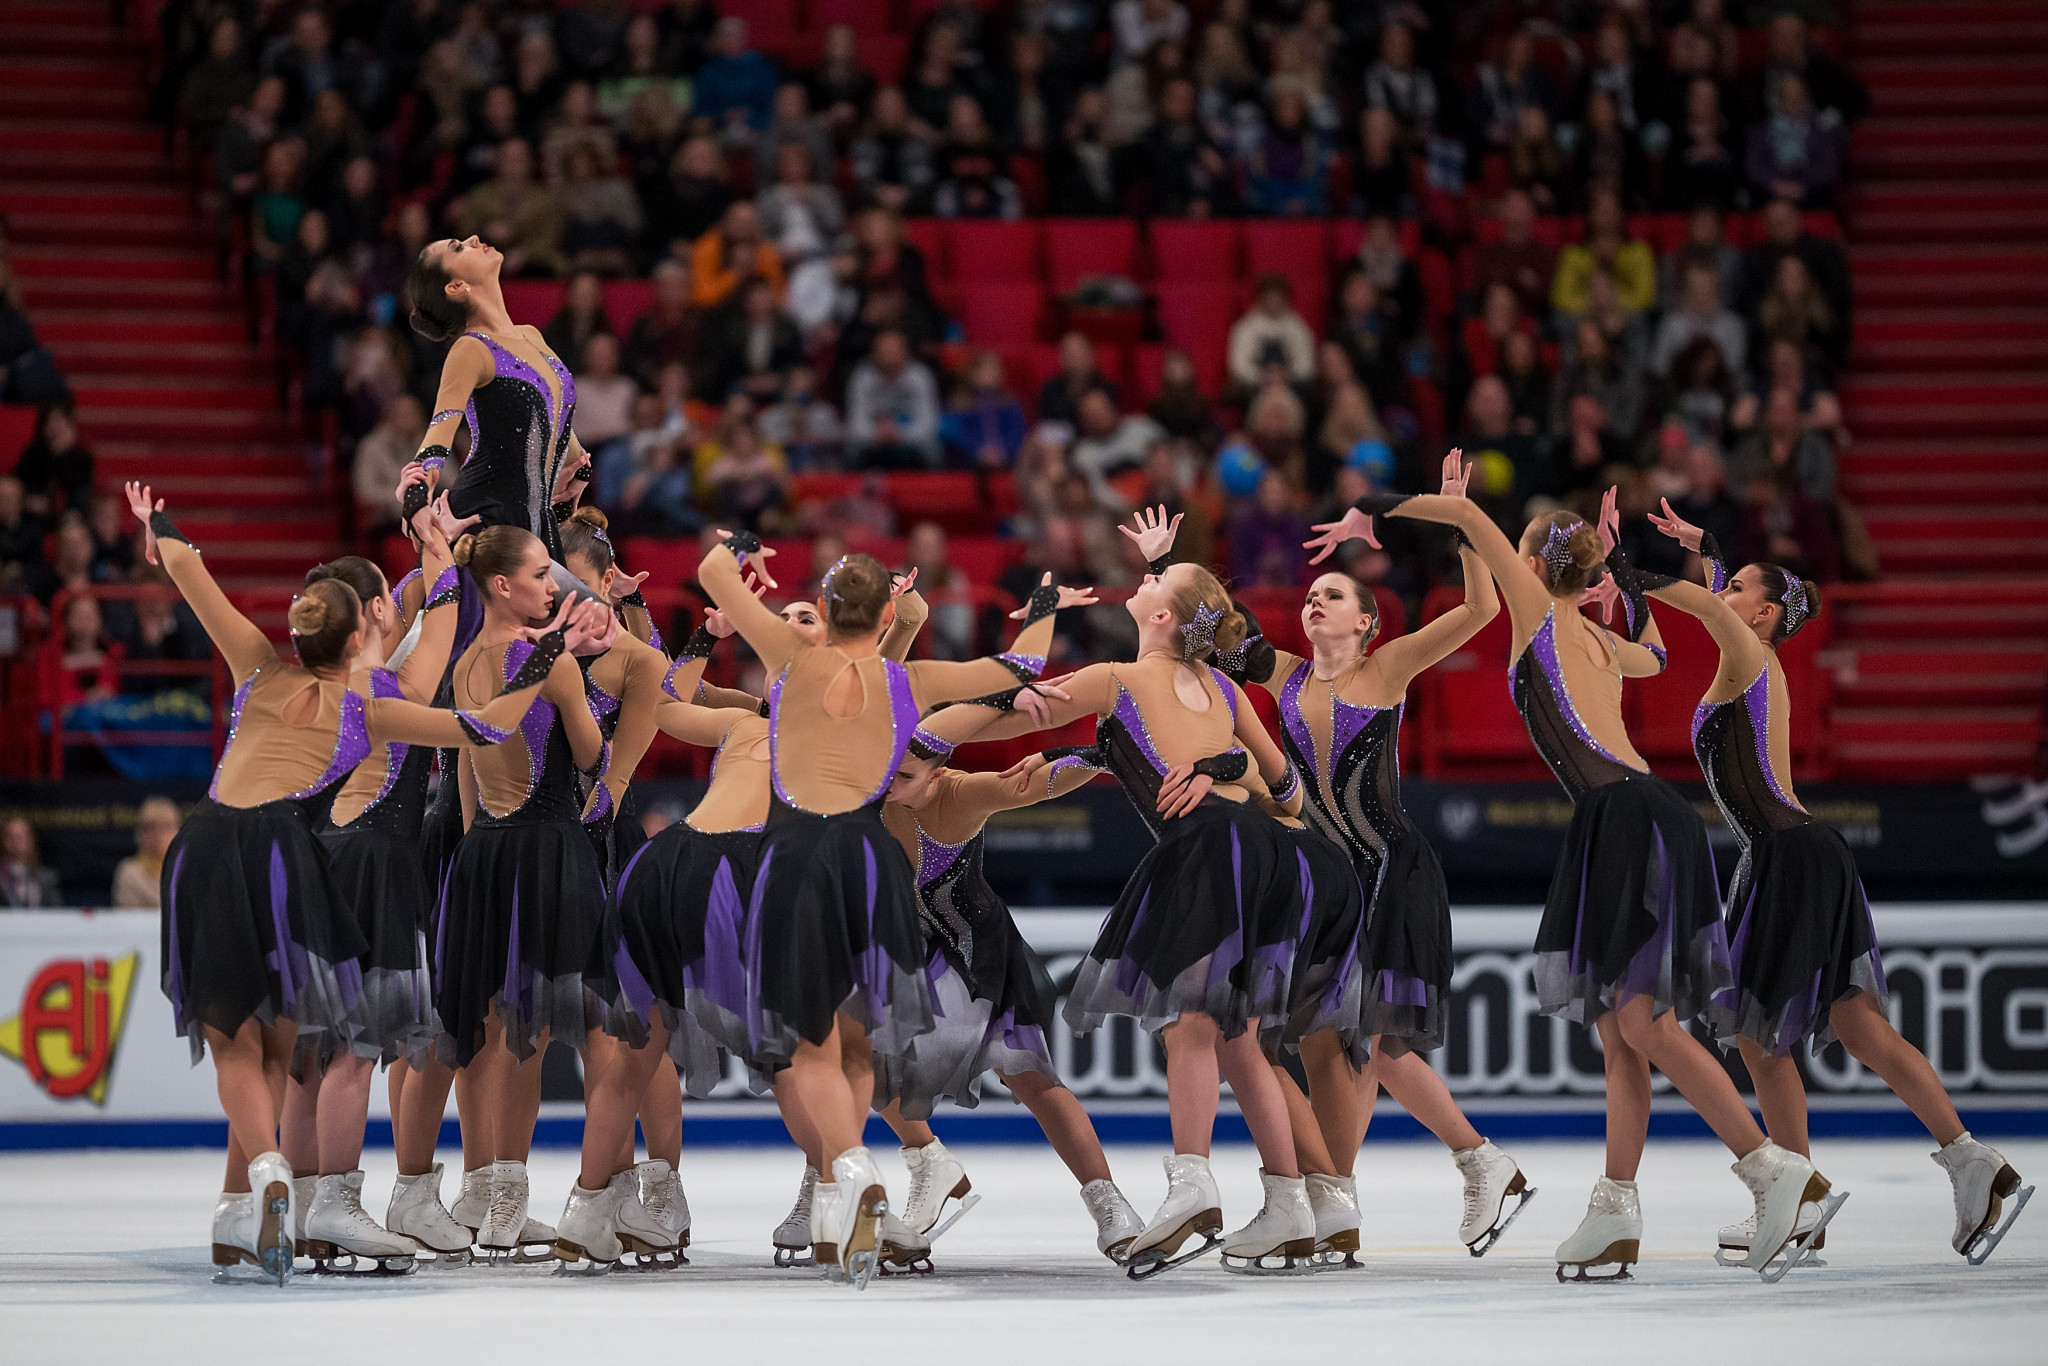 Paradise lost as faulty lift costs Russian team third ISU Synchronized Skating world title